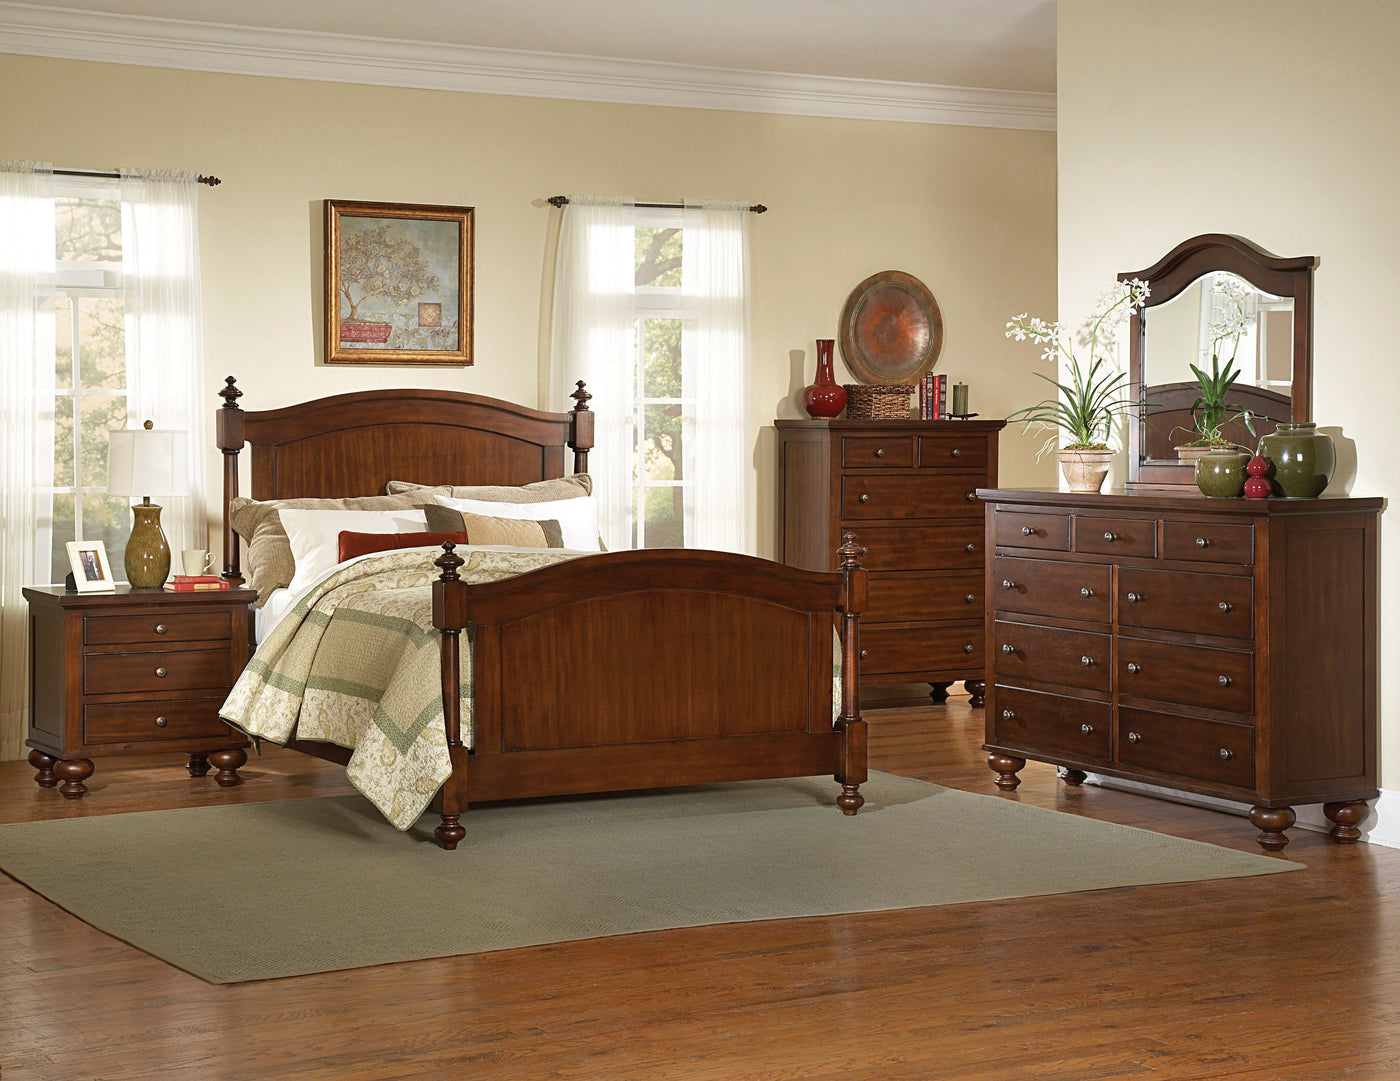 Aris Cherry Queen Bed - Country Woods Furniture